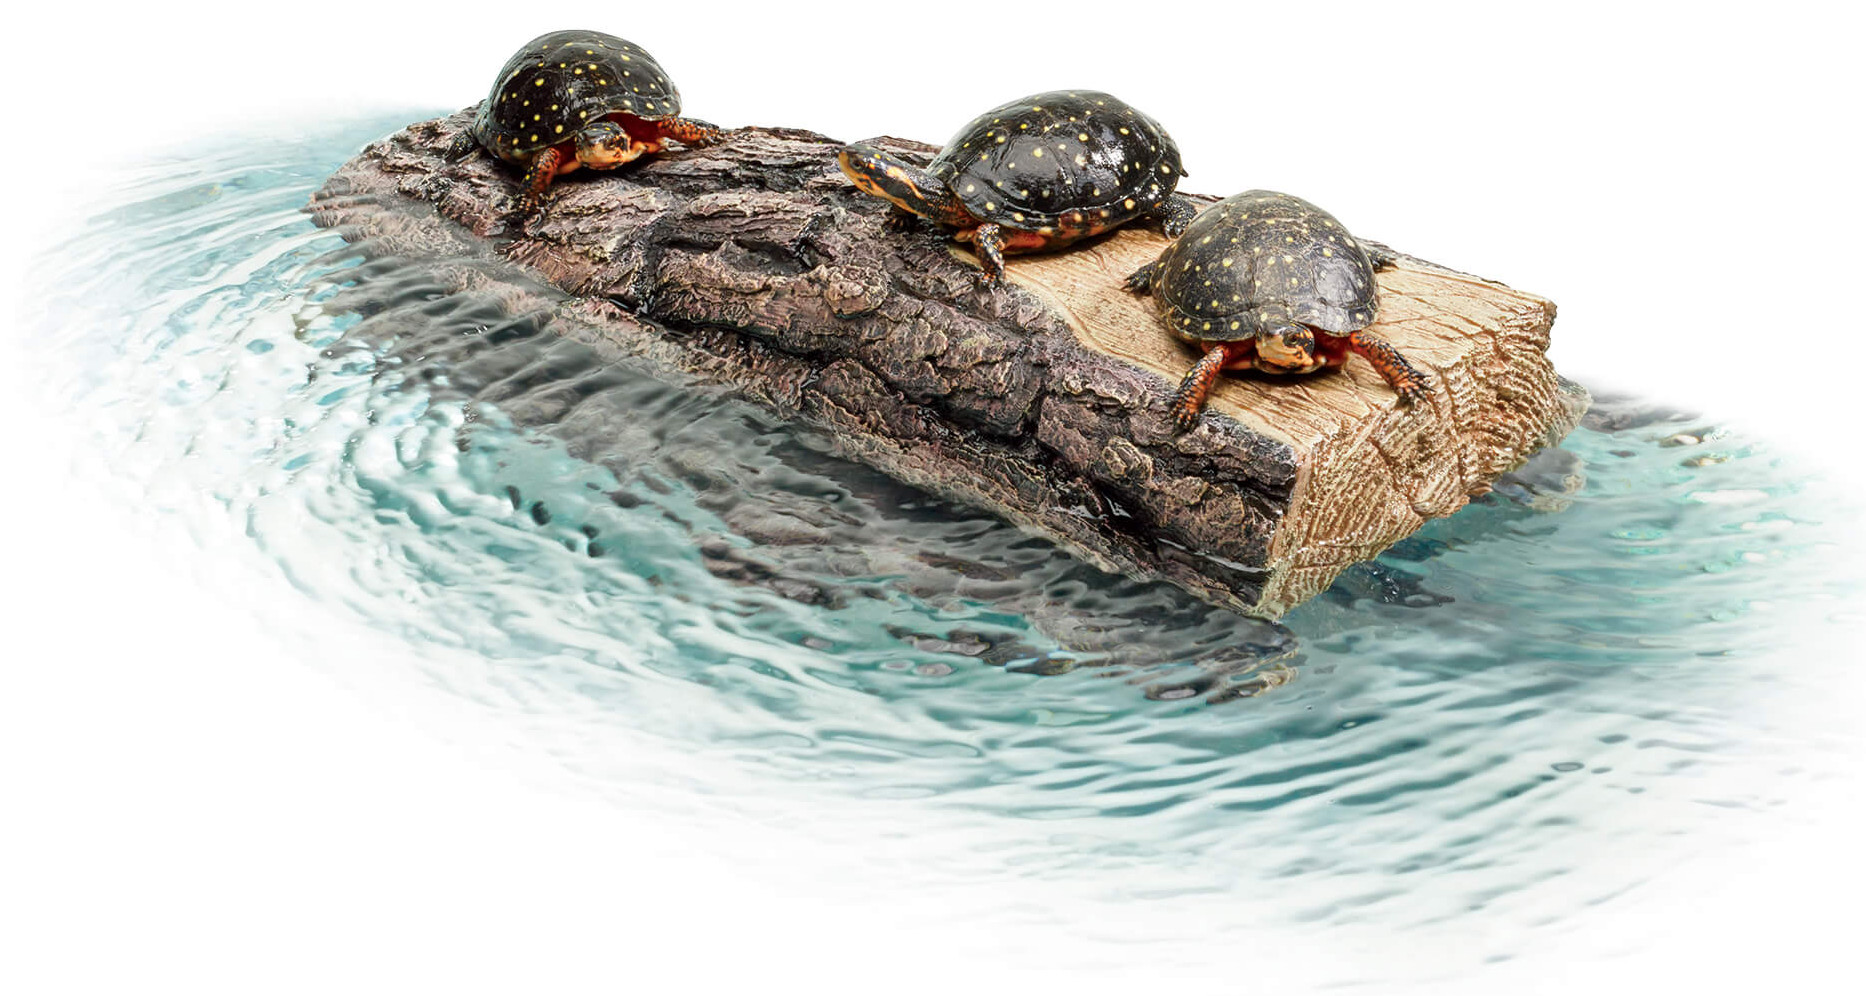 log on water with turtles floating on it